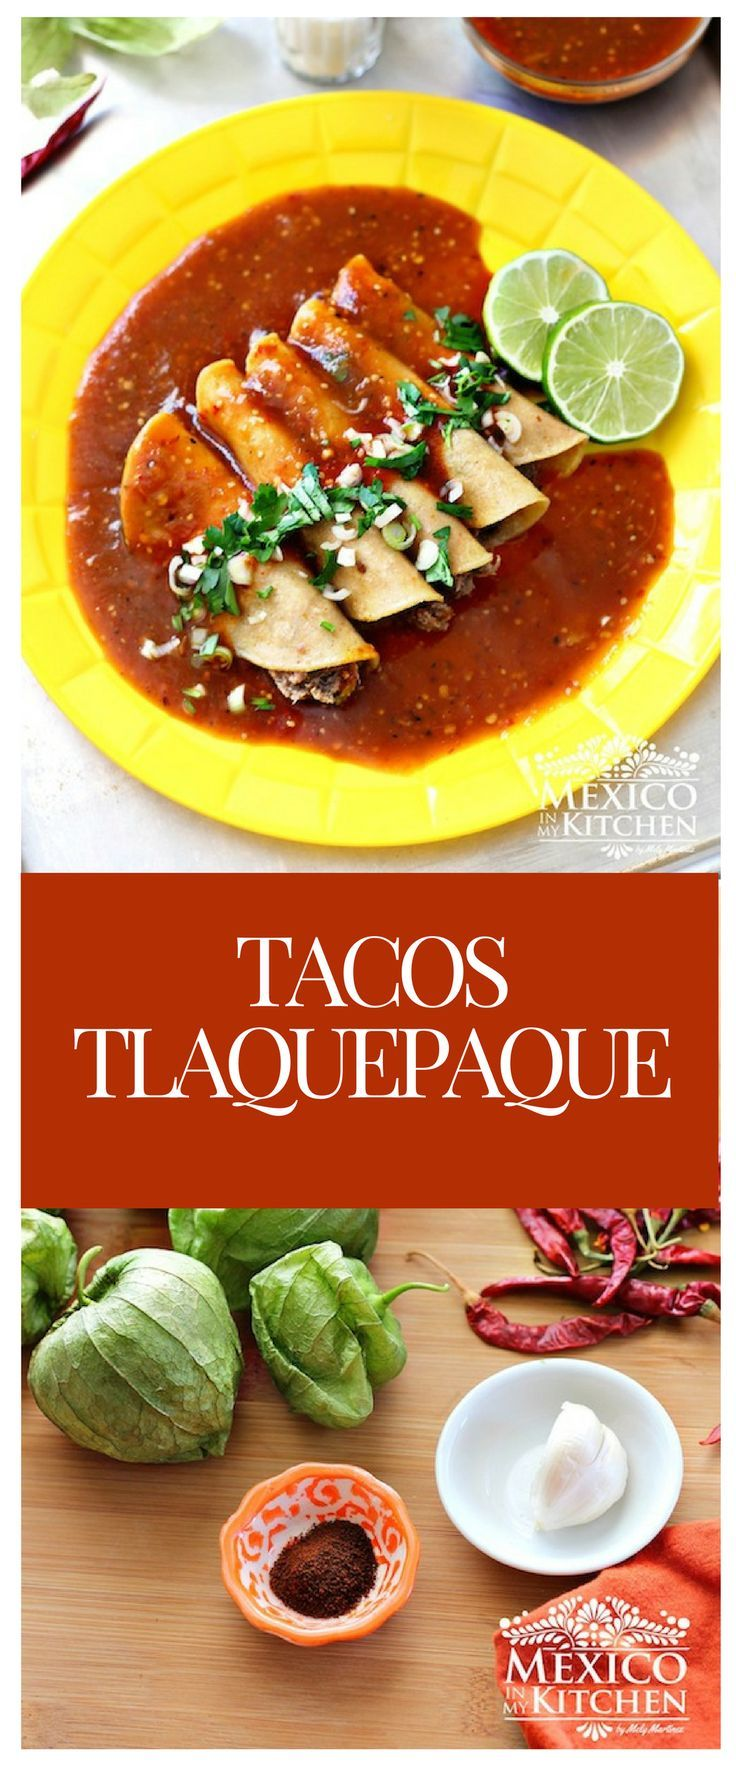 hese tacos are made usingyellow corn tortillas filled with stewed beef, made using the cow's head(barbacoa de cabeza), and then covered with a brownish salsa made of tomatillosand peppers.#recipe #mexican #food #kitchen #tacos